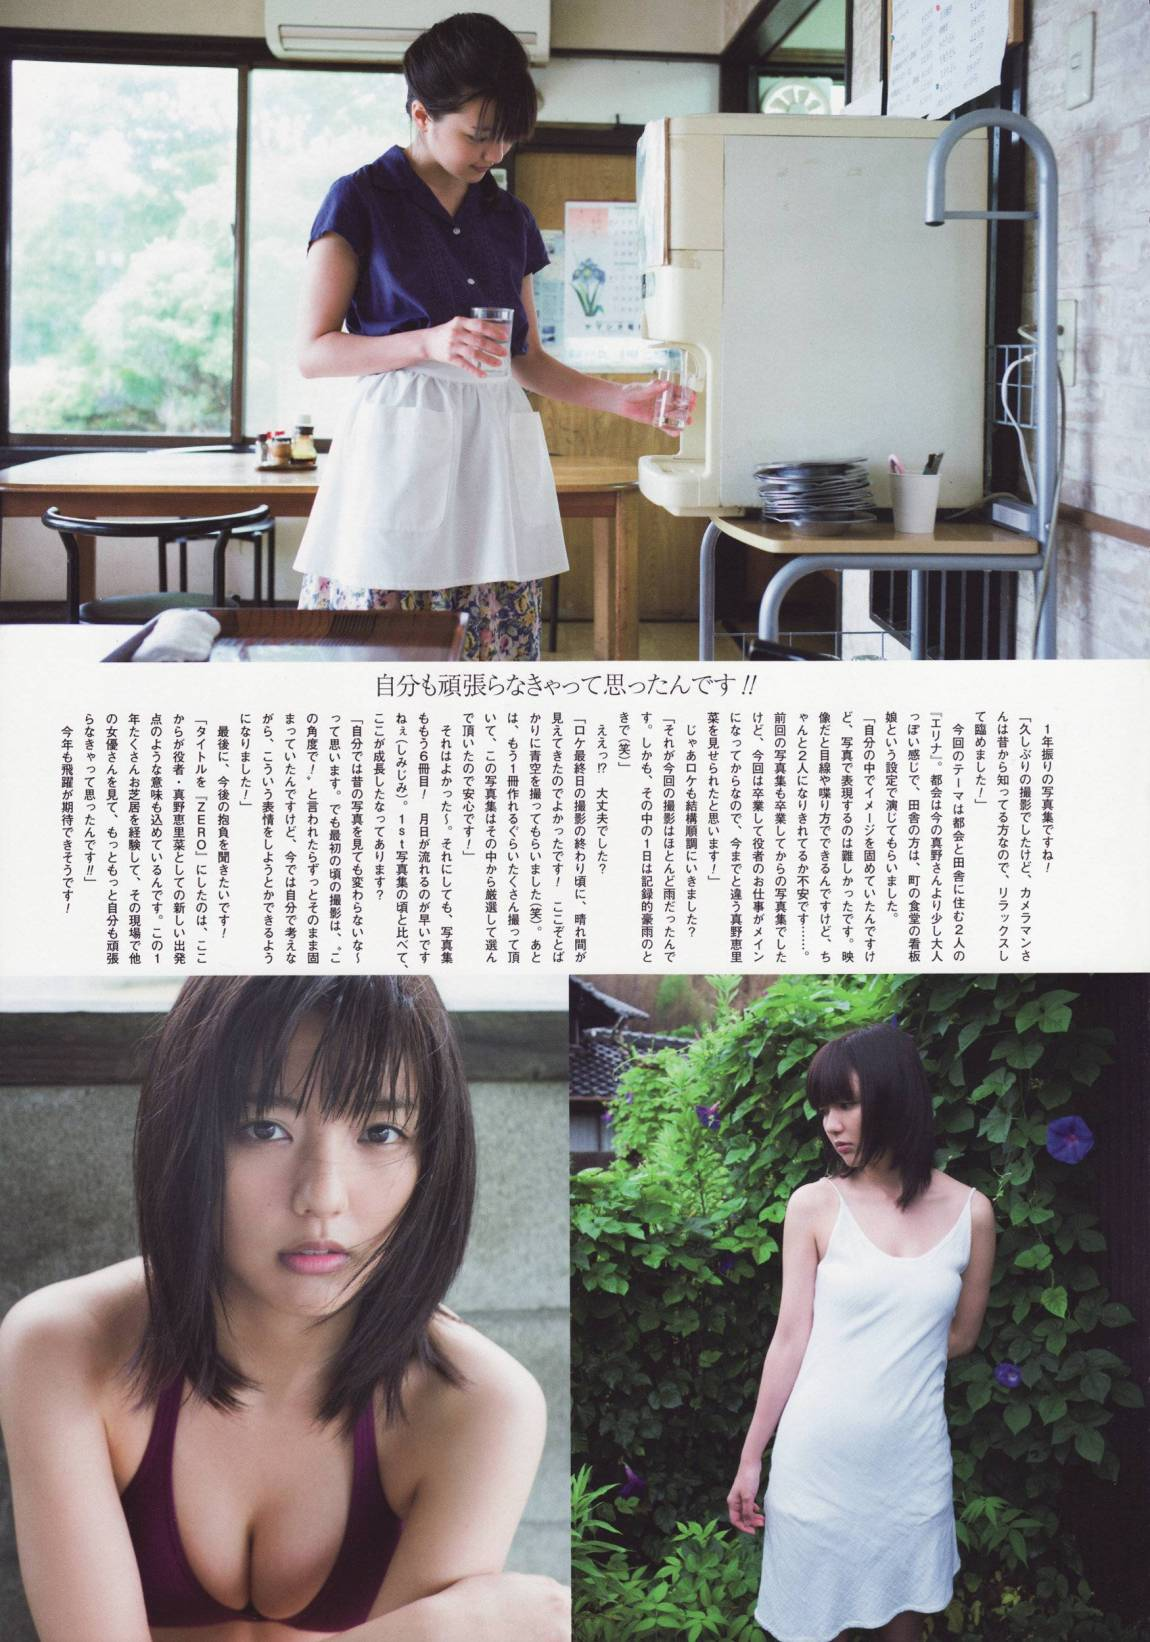 Magazine, Mano Erina, Photobook, UTB ~ Up To Boy